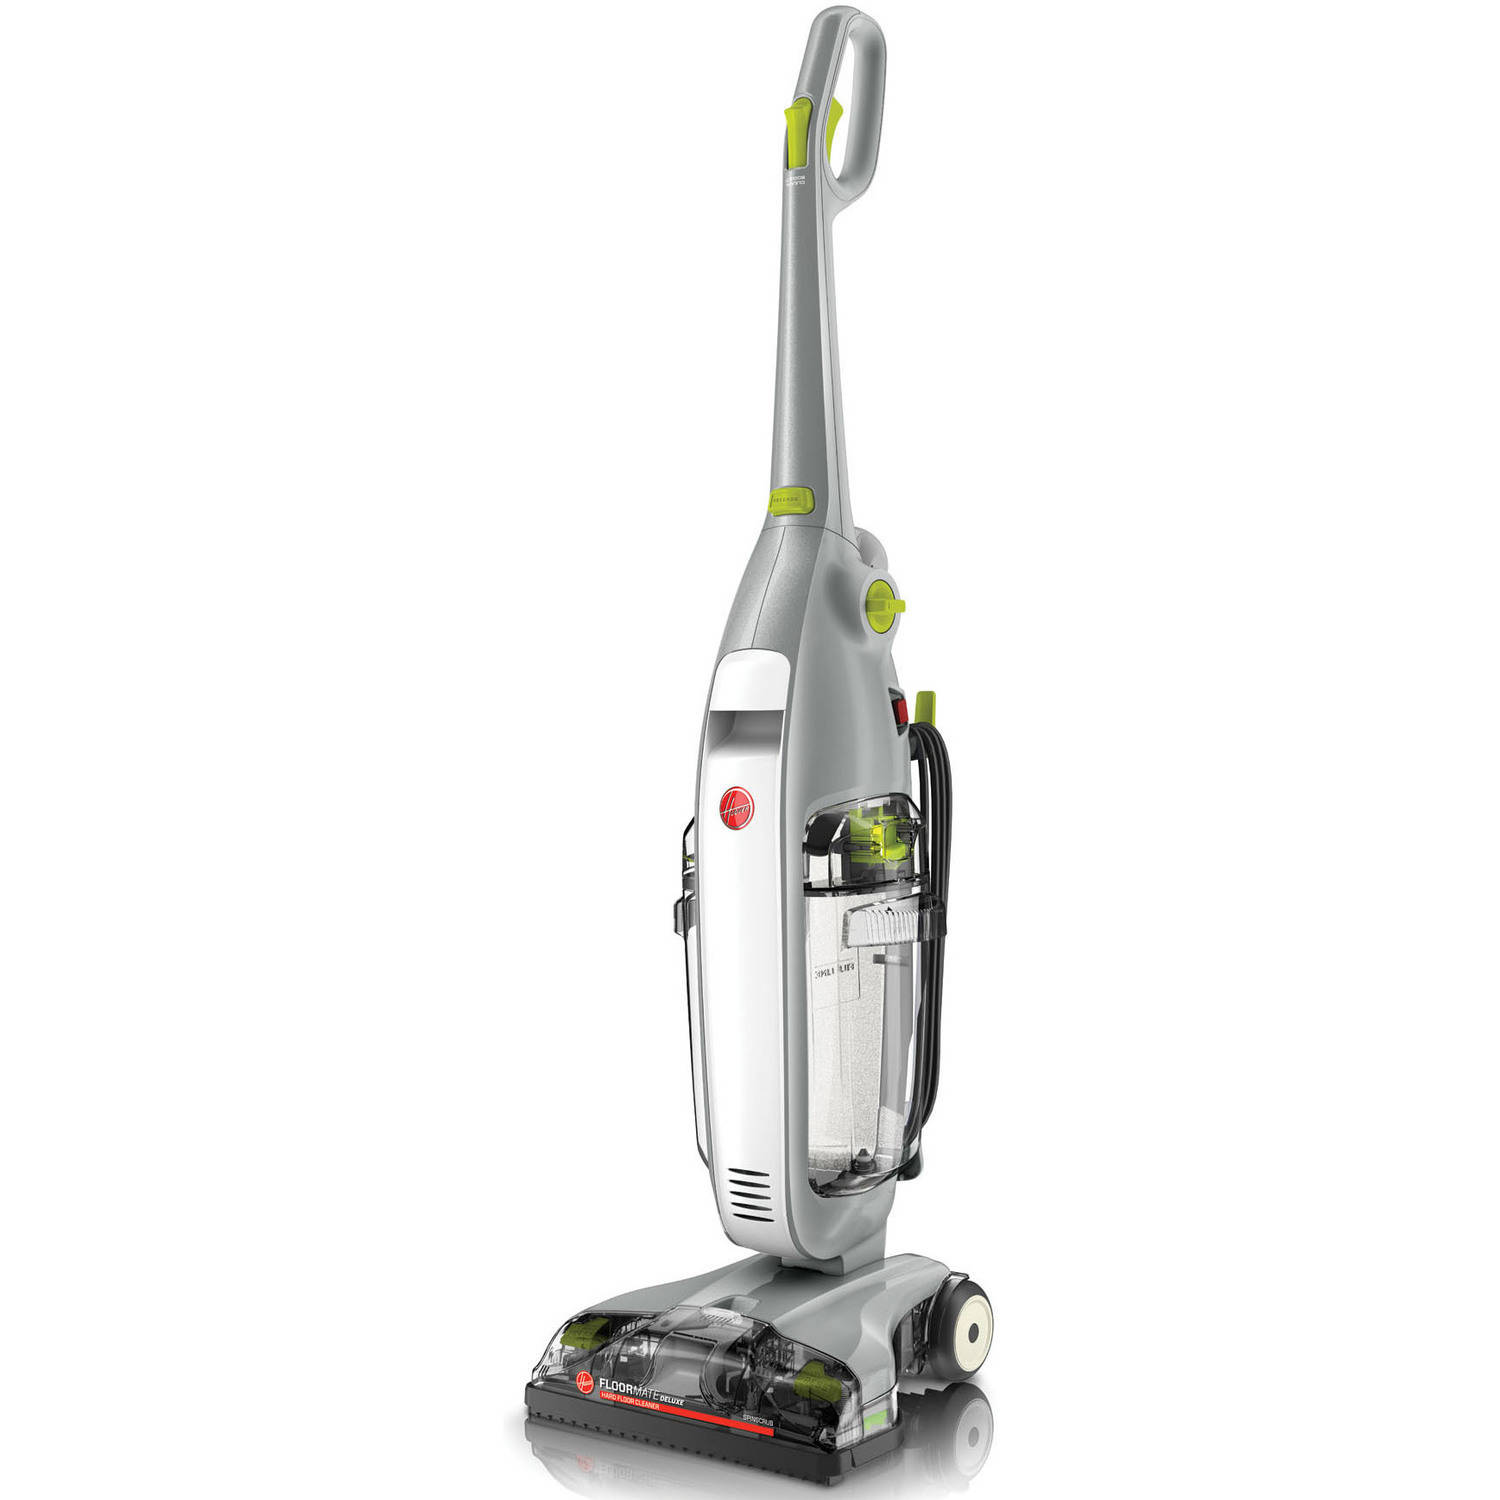 Hoover 174 Floormate 174 Hard Floor Cleaner Woodfloordoctor Com